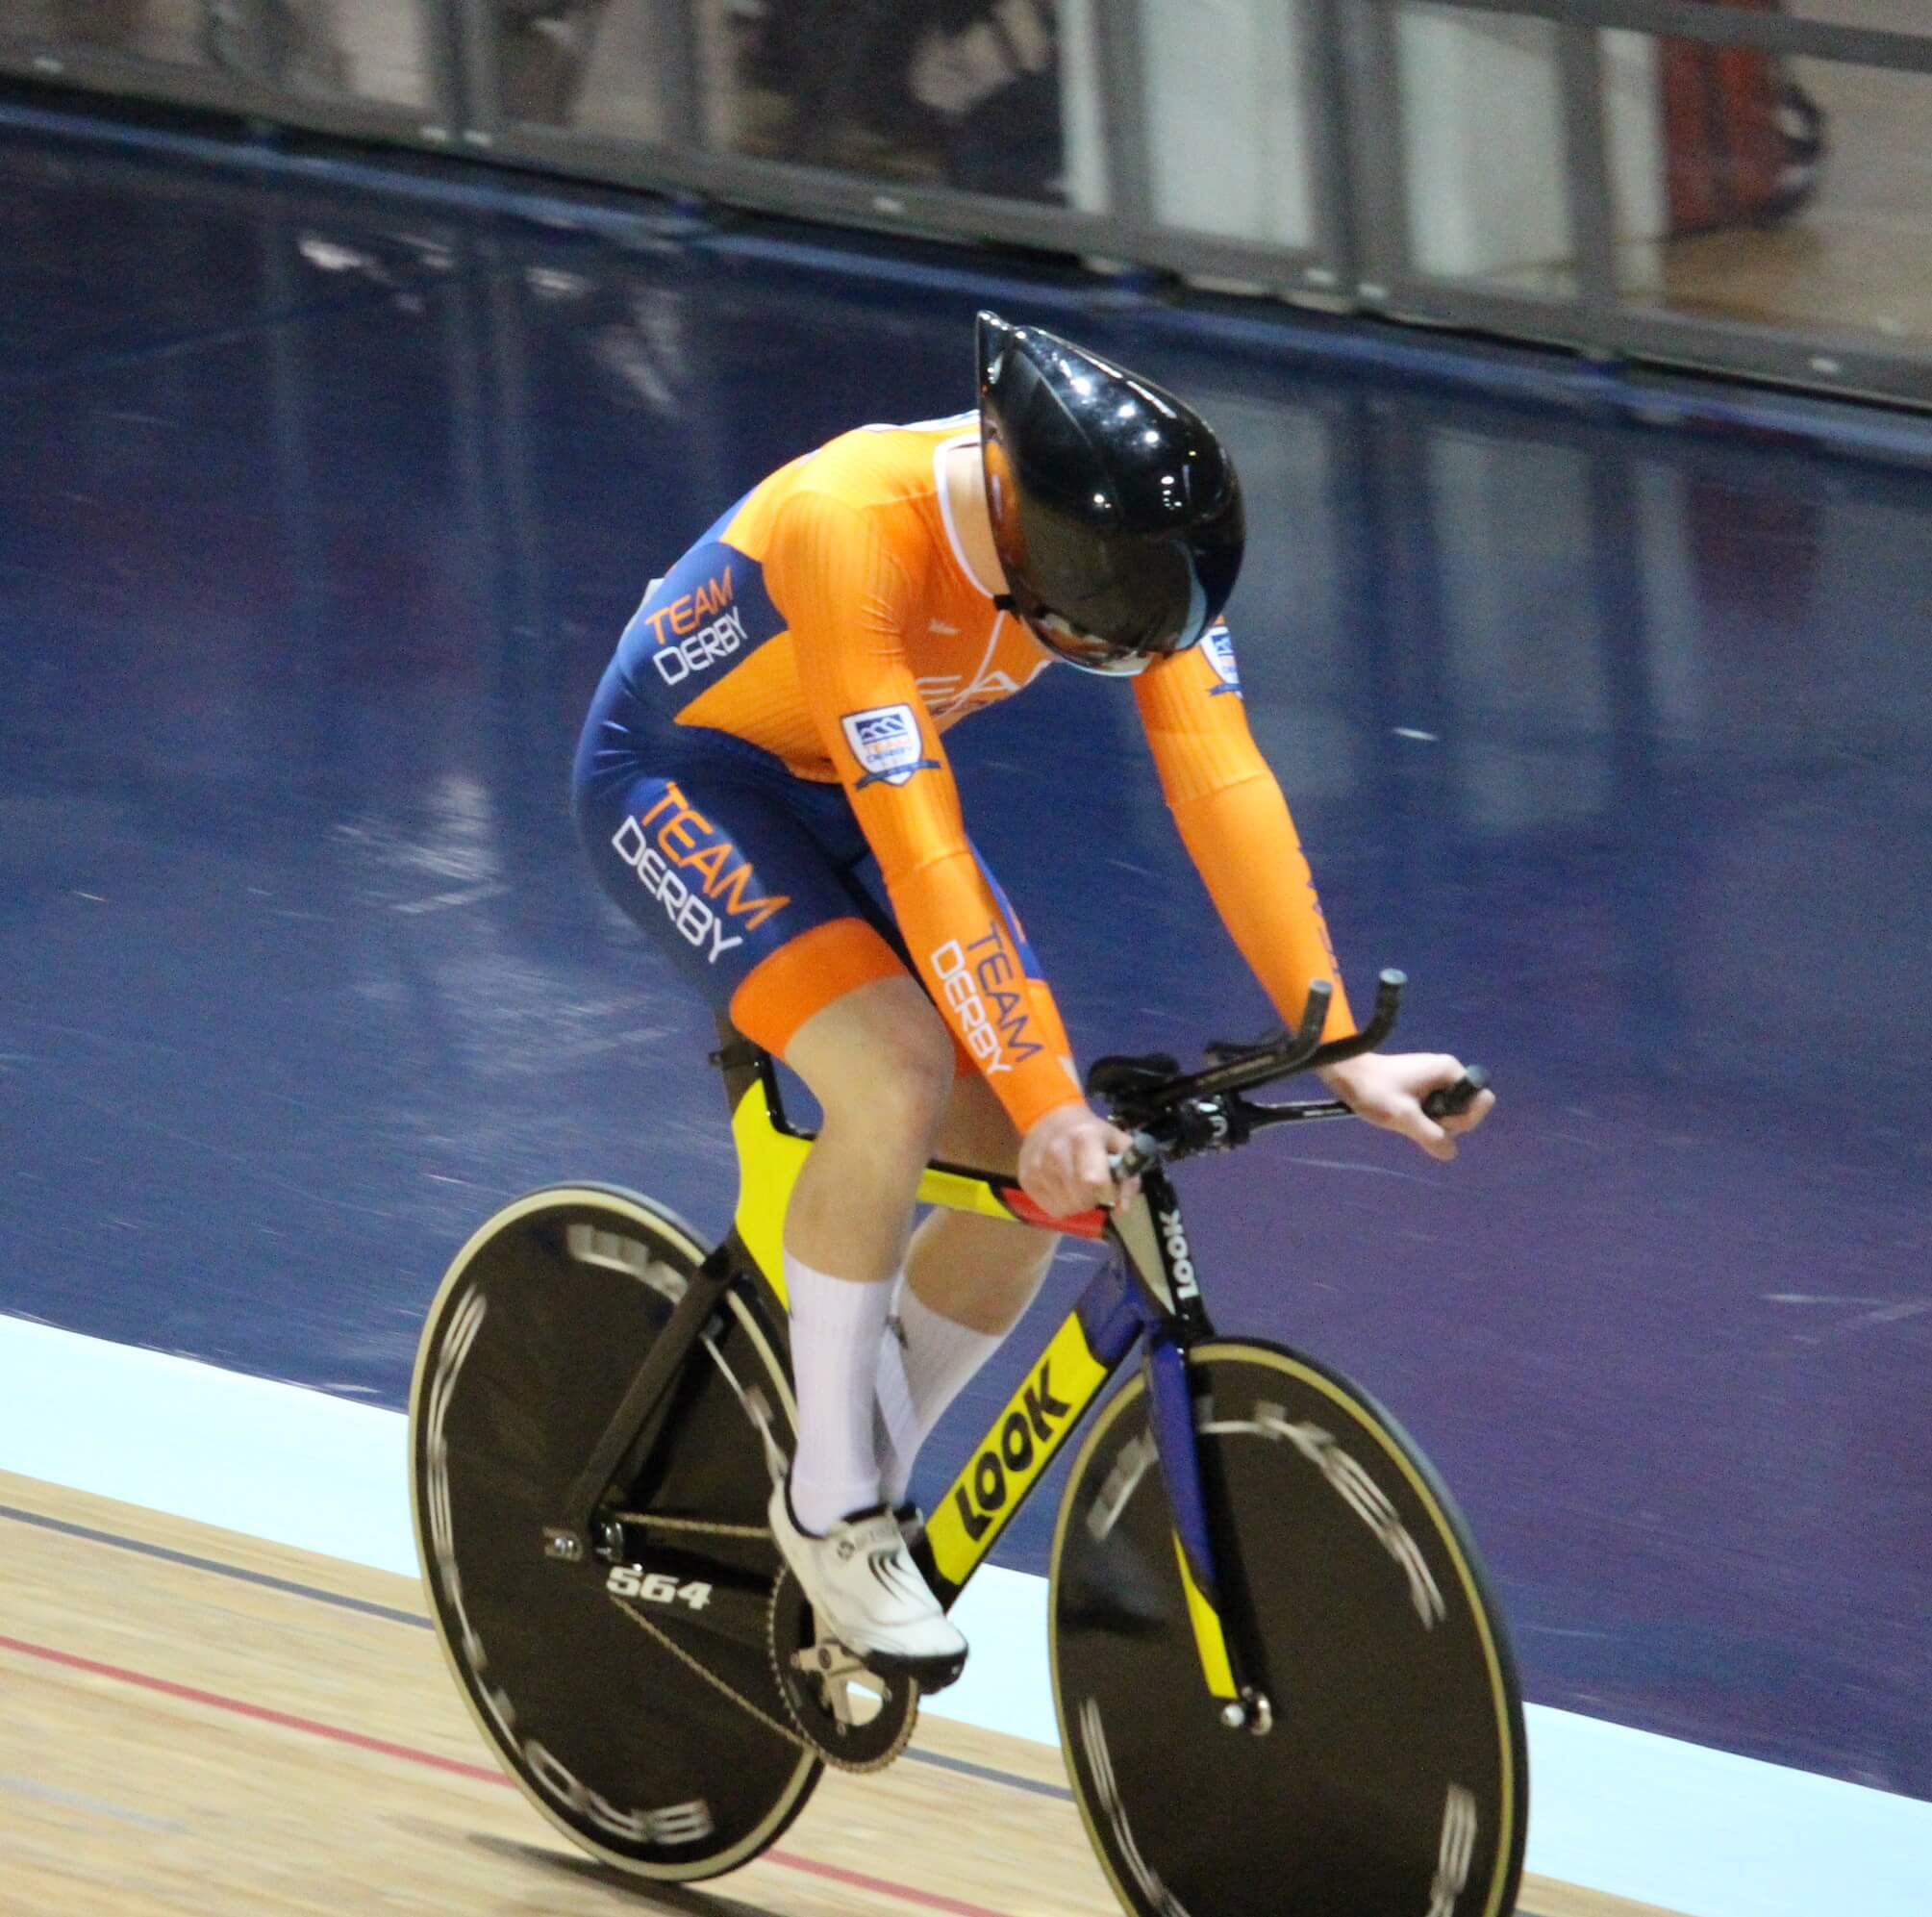 Team Derby sports student cycling on Indoor velodrome track